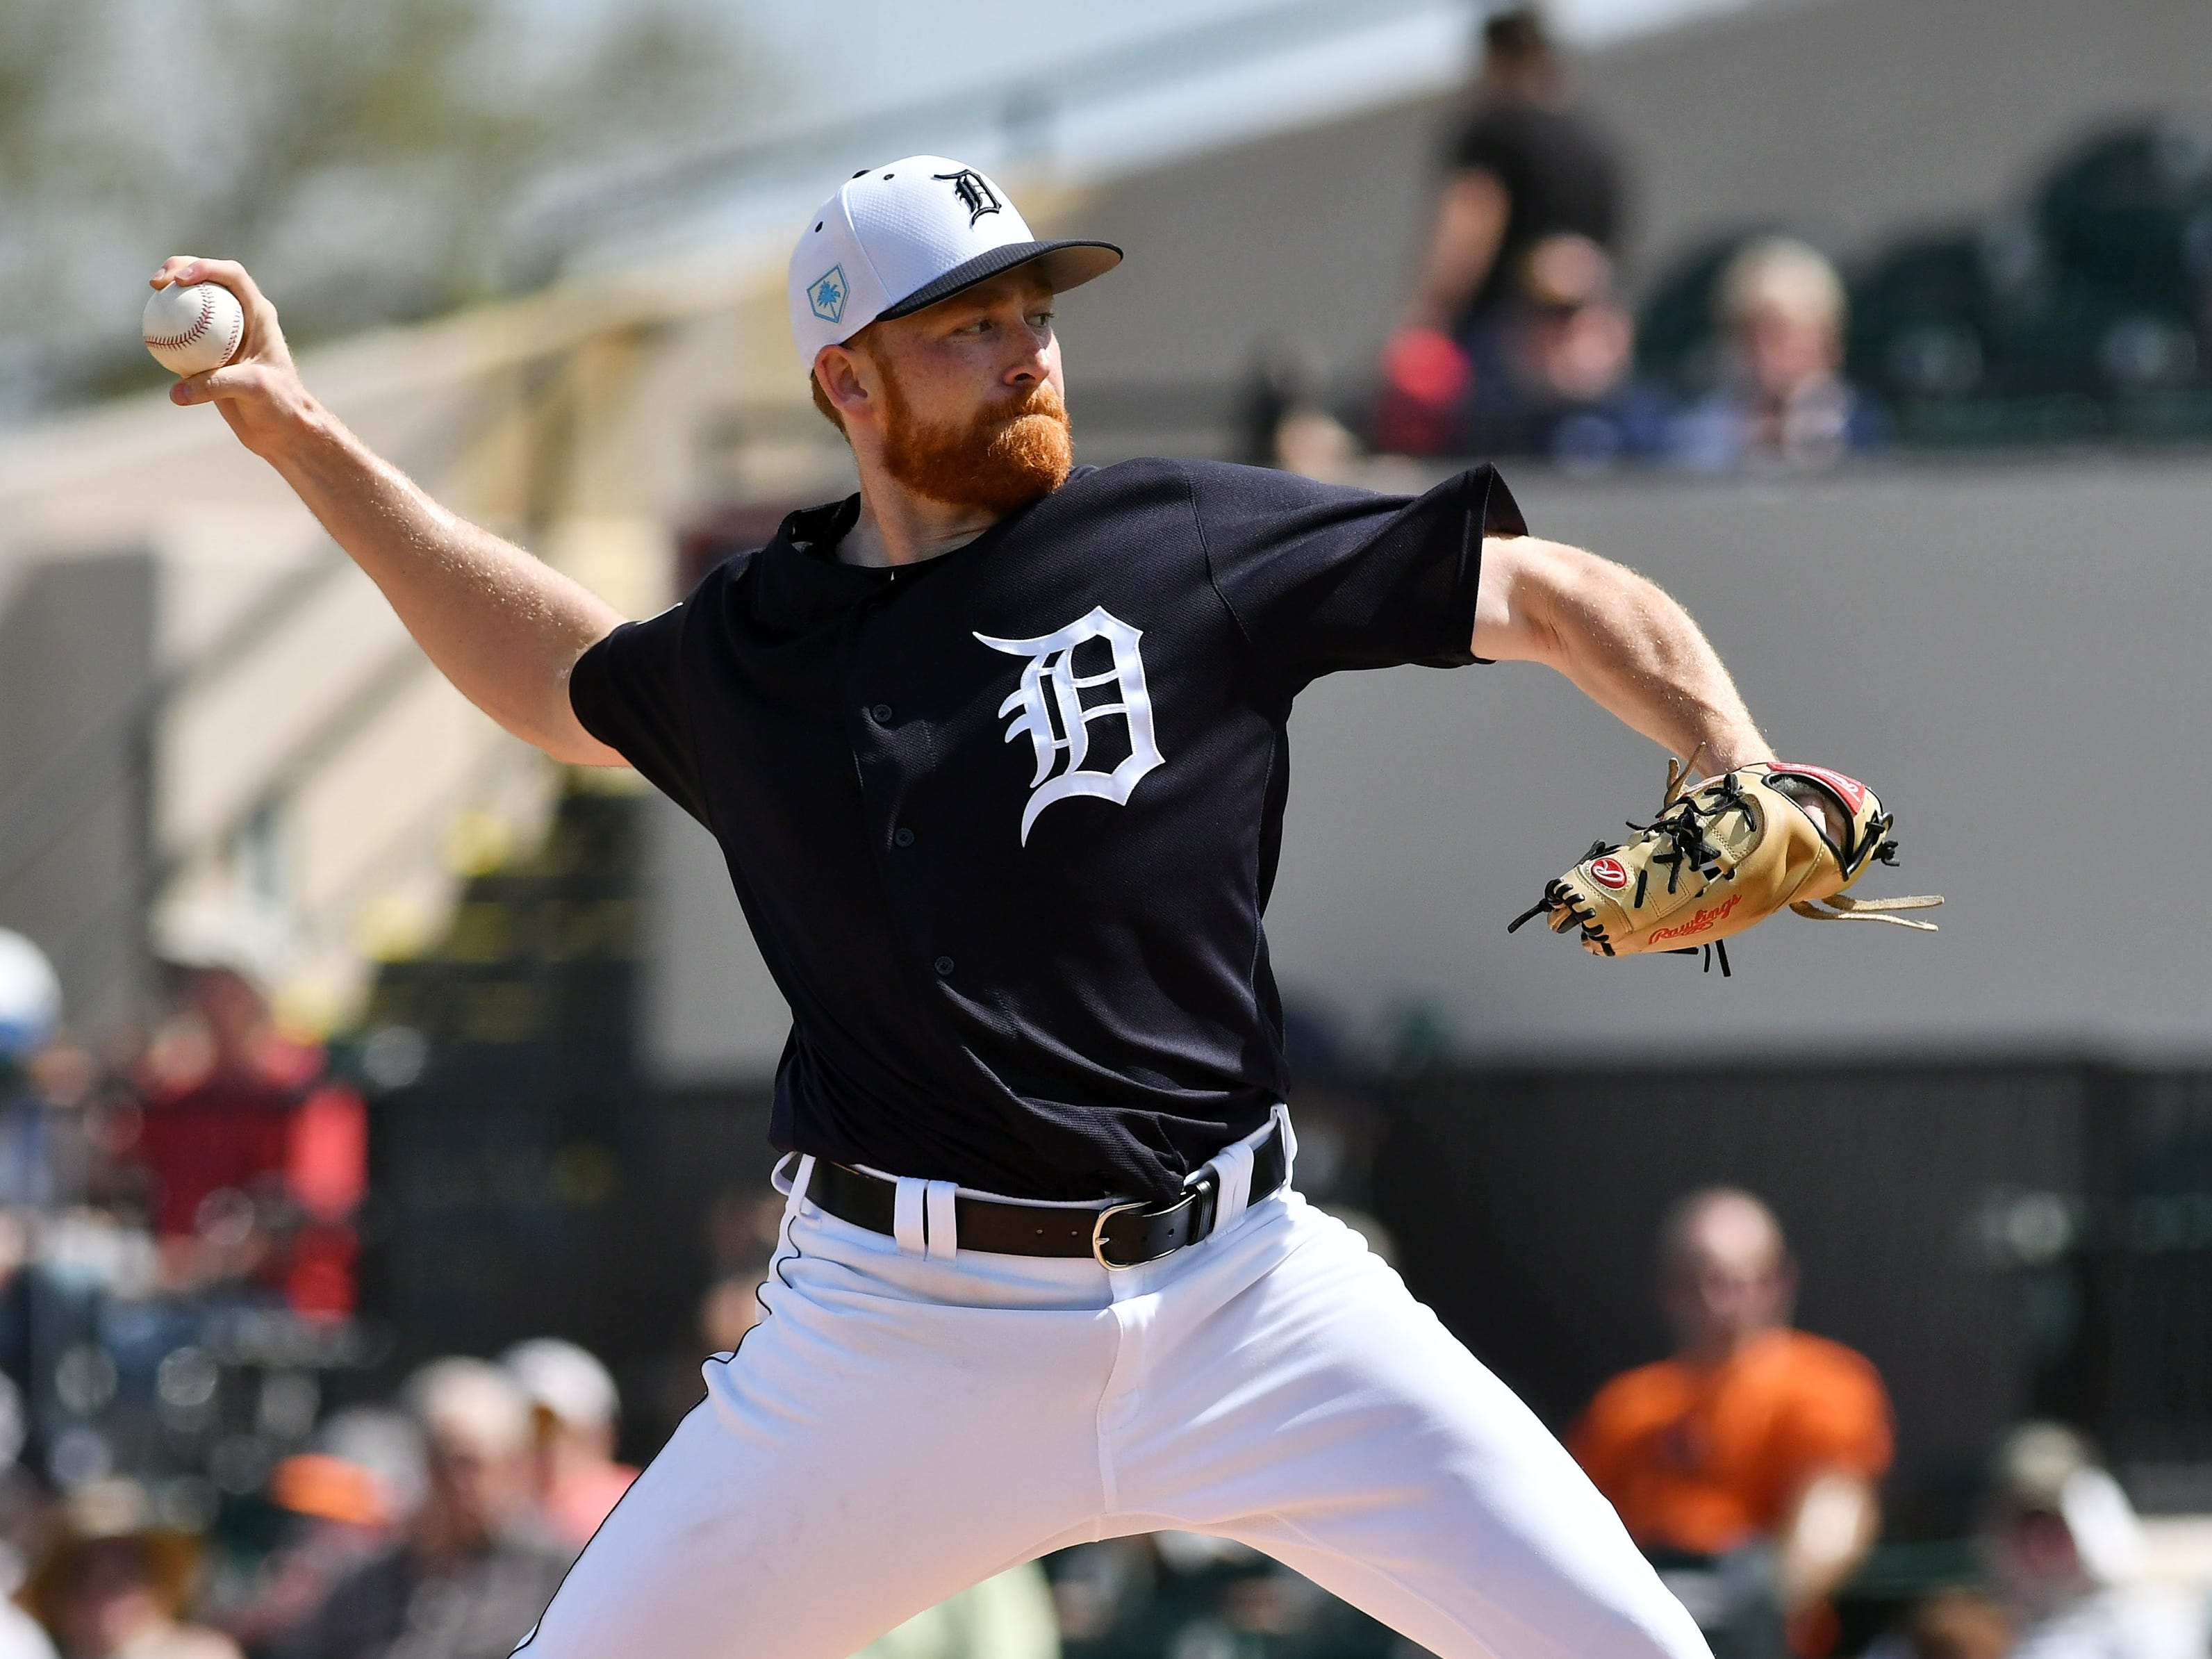 Tigers pitcher Spencer Turnbull works in the second inning as the Detroit Tigers win 13-2 over Southeastern University in Lakeland, Fla. on Feb. 22, 2019. Turnbull pitched two innings allowing one hit with one strikeout.